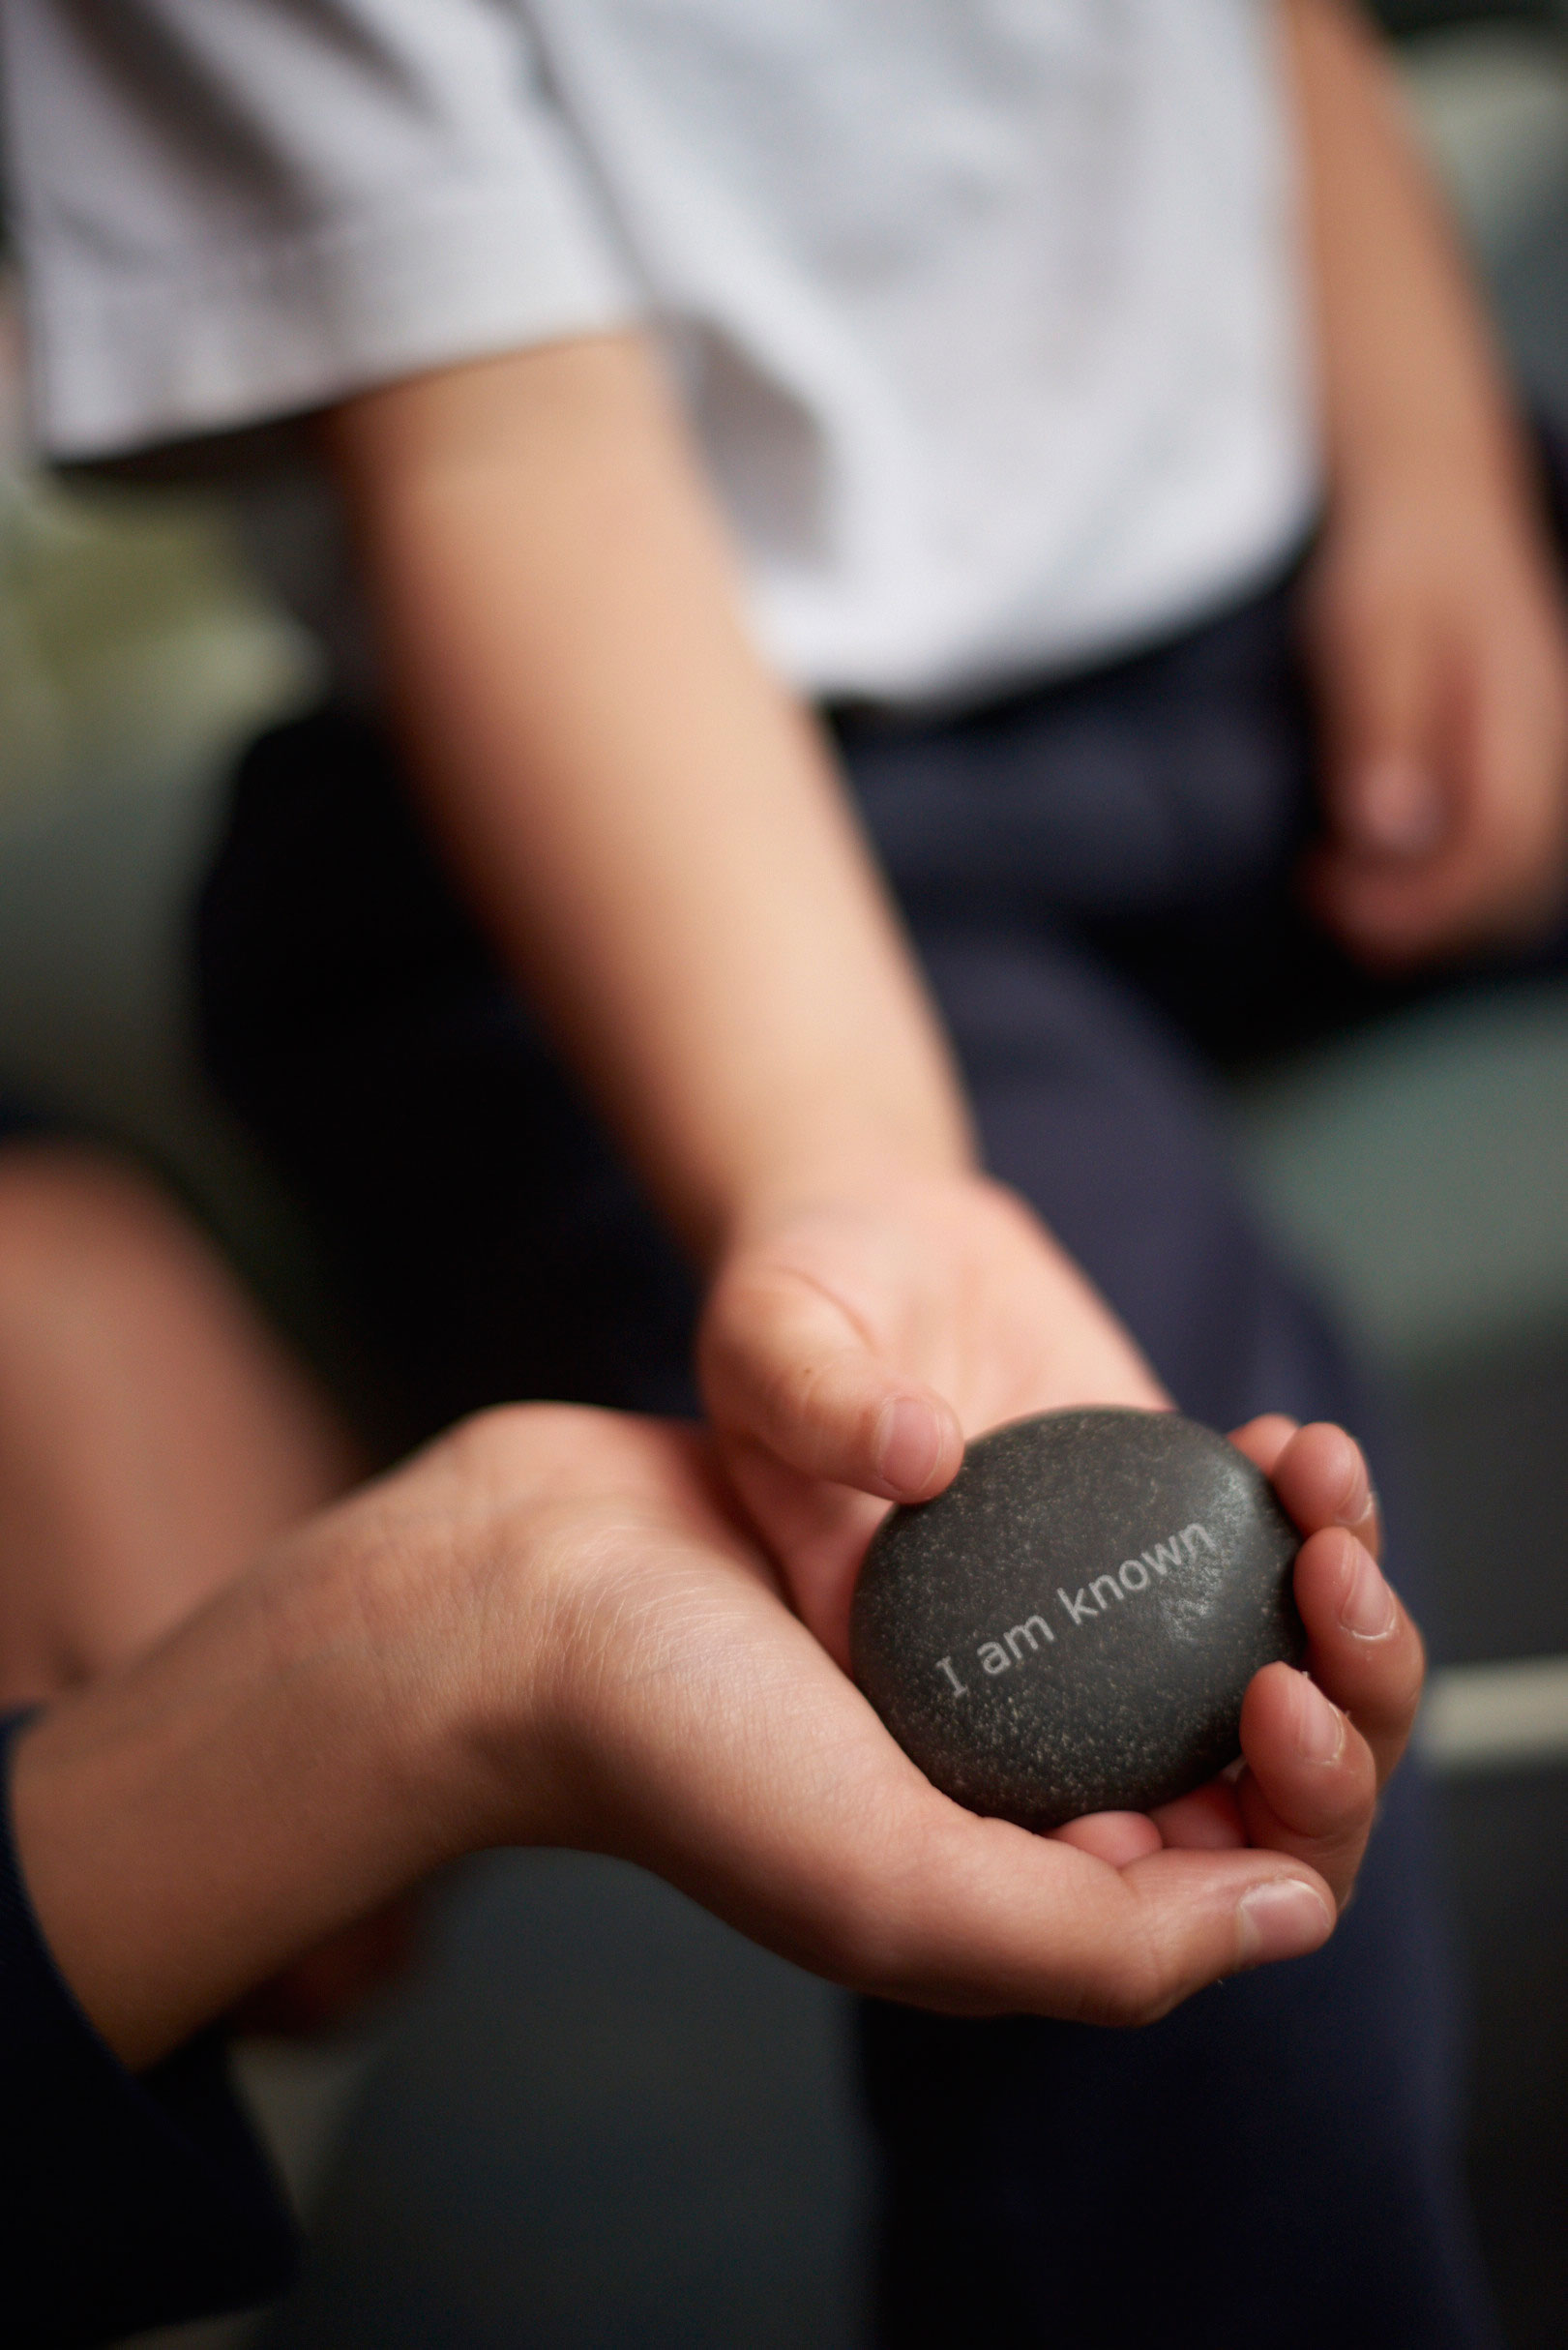 Student holding the I am known stone